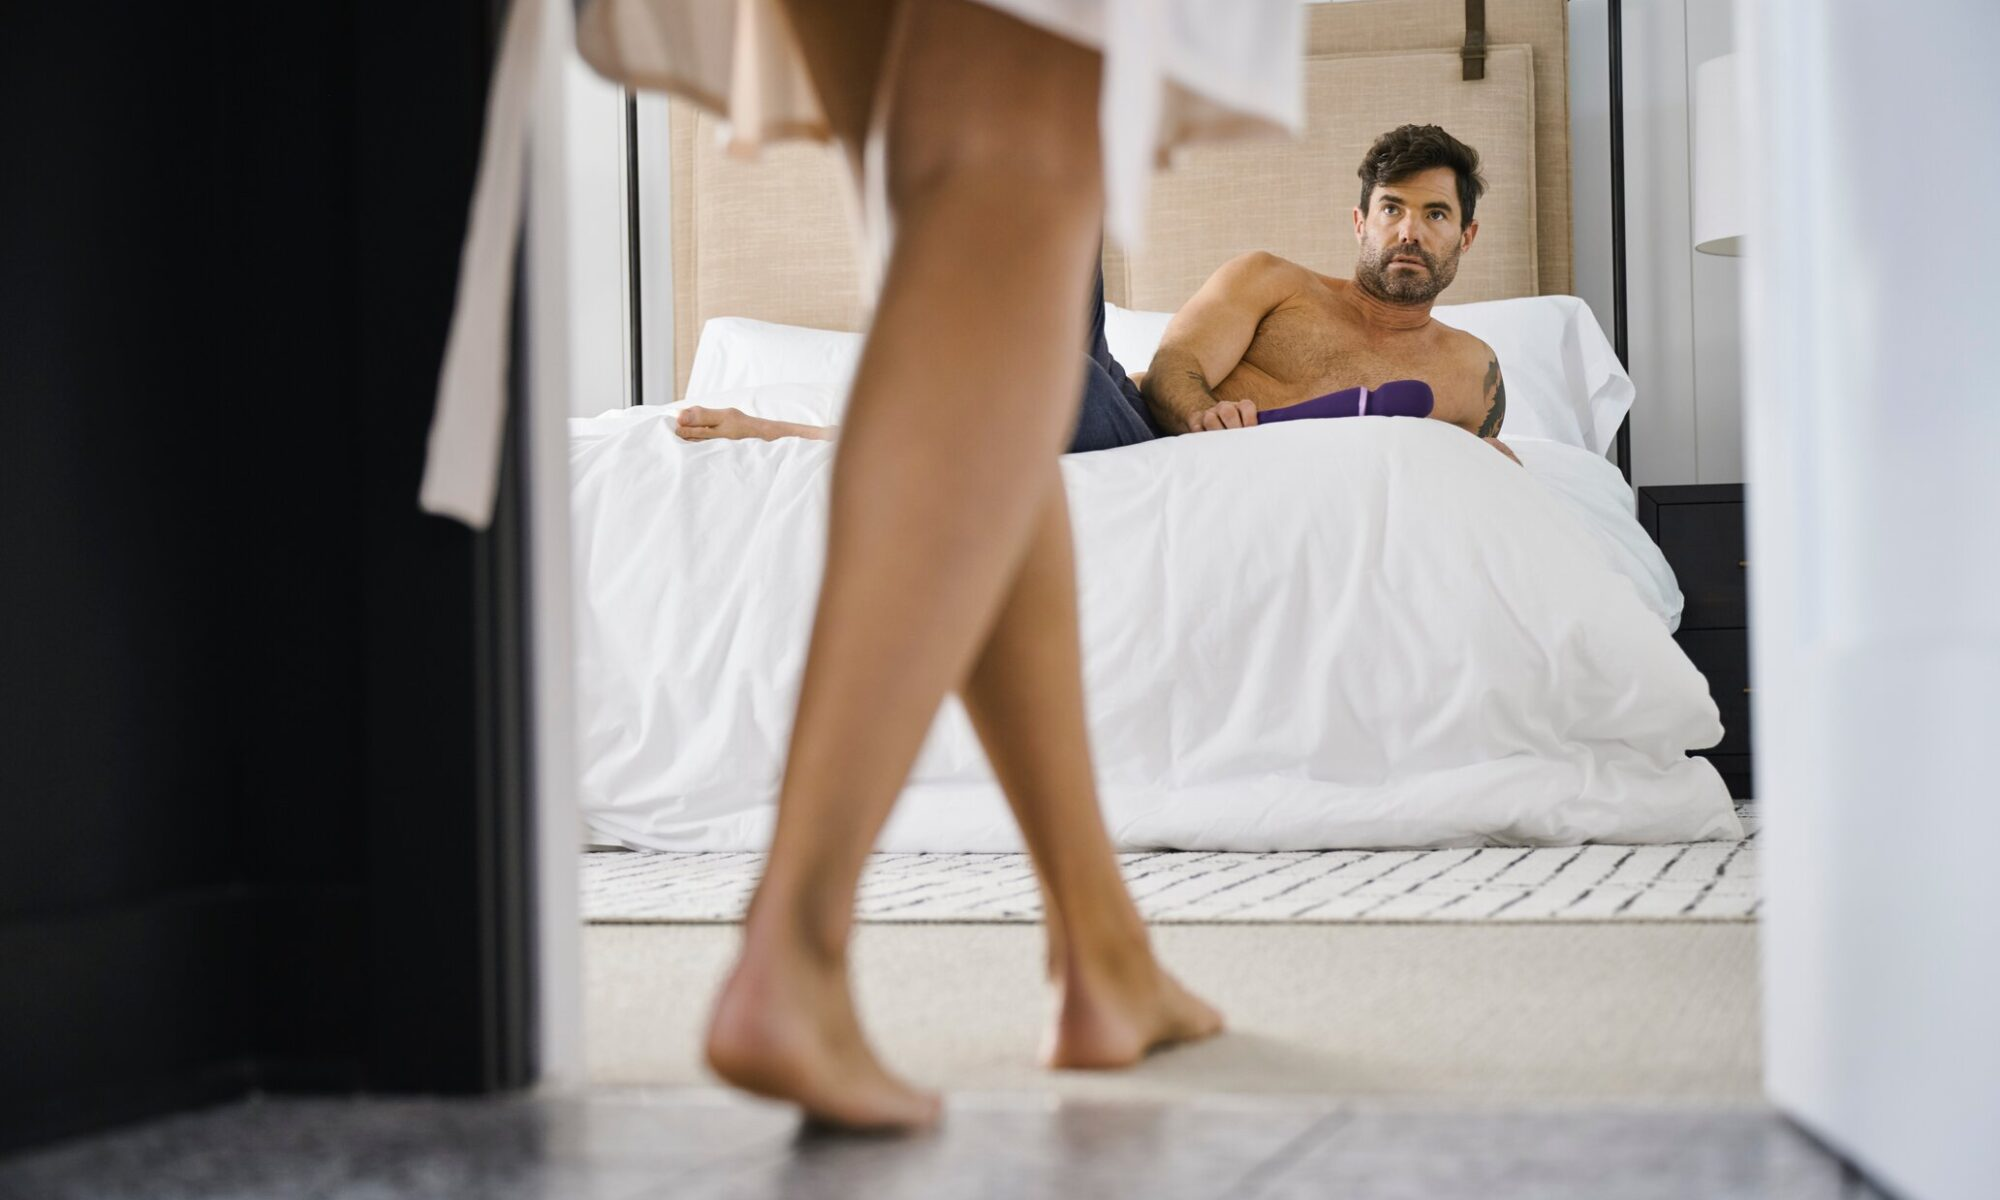 , How Can I Help My Partner With Premature Ejaculation?